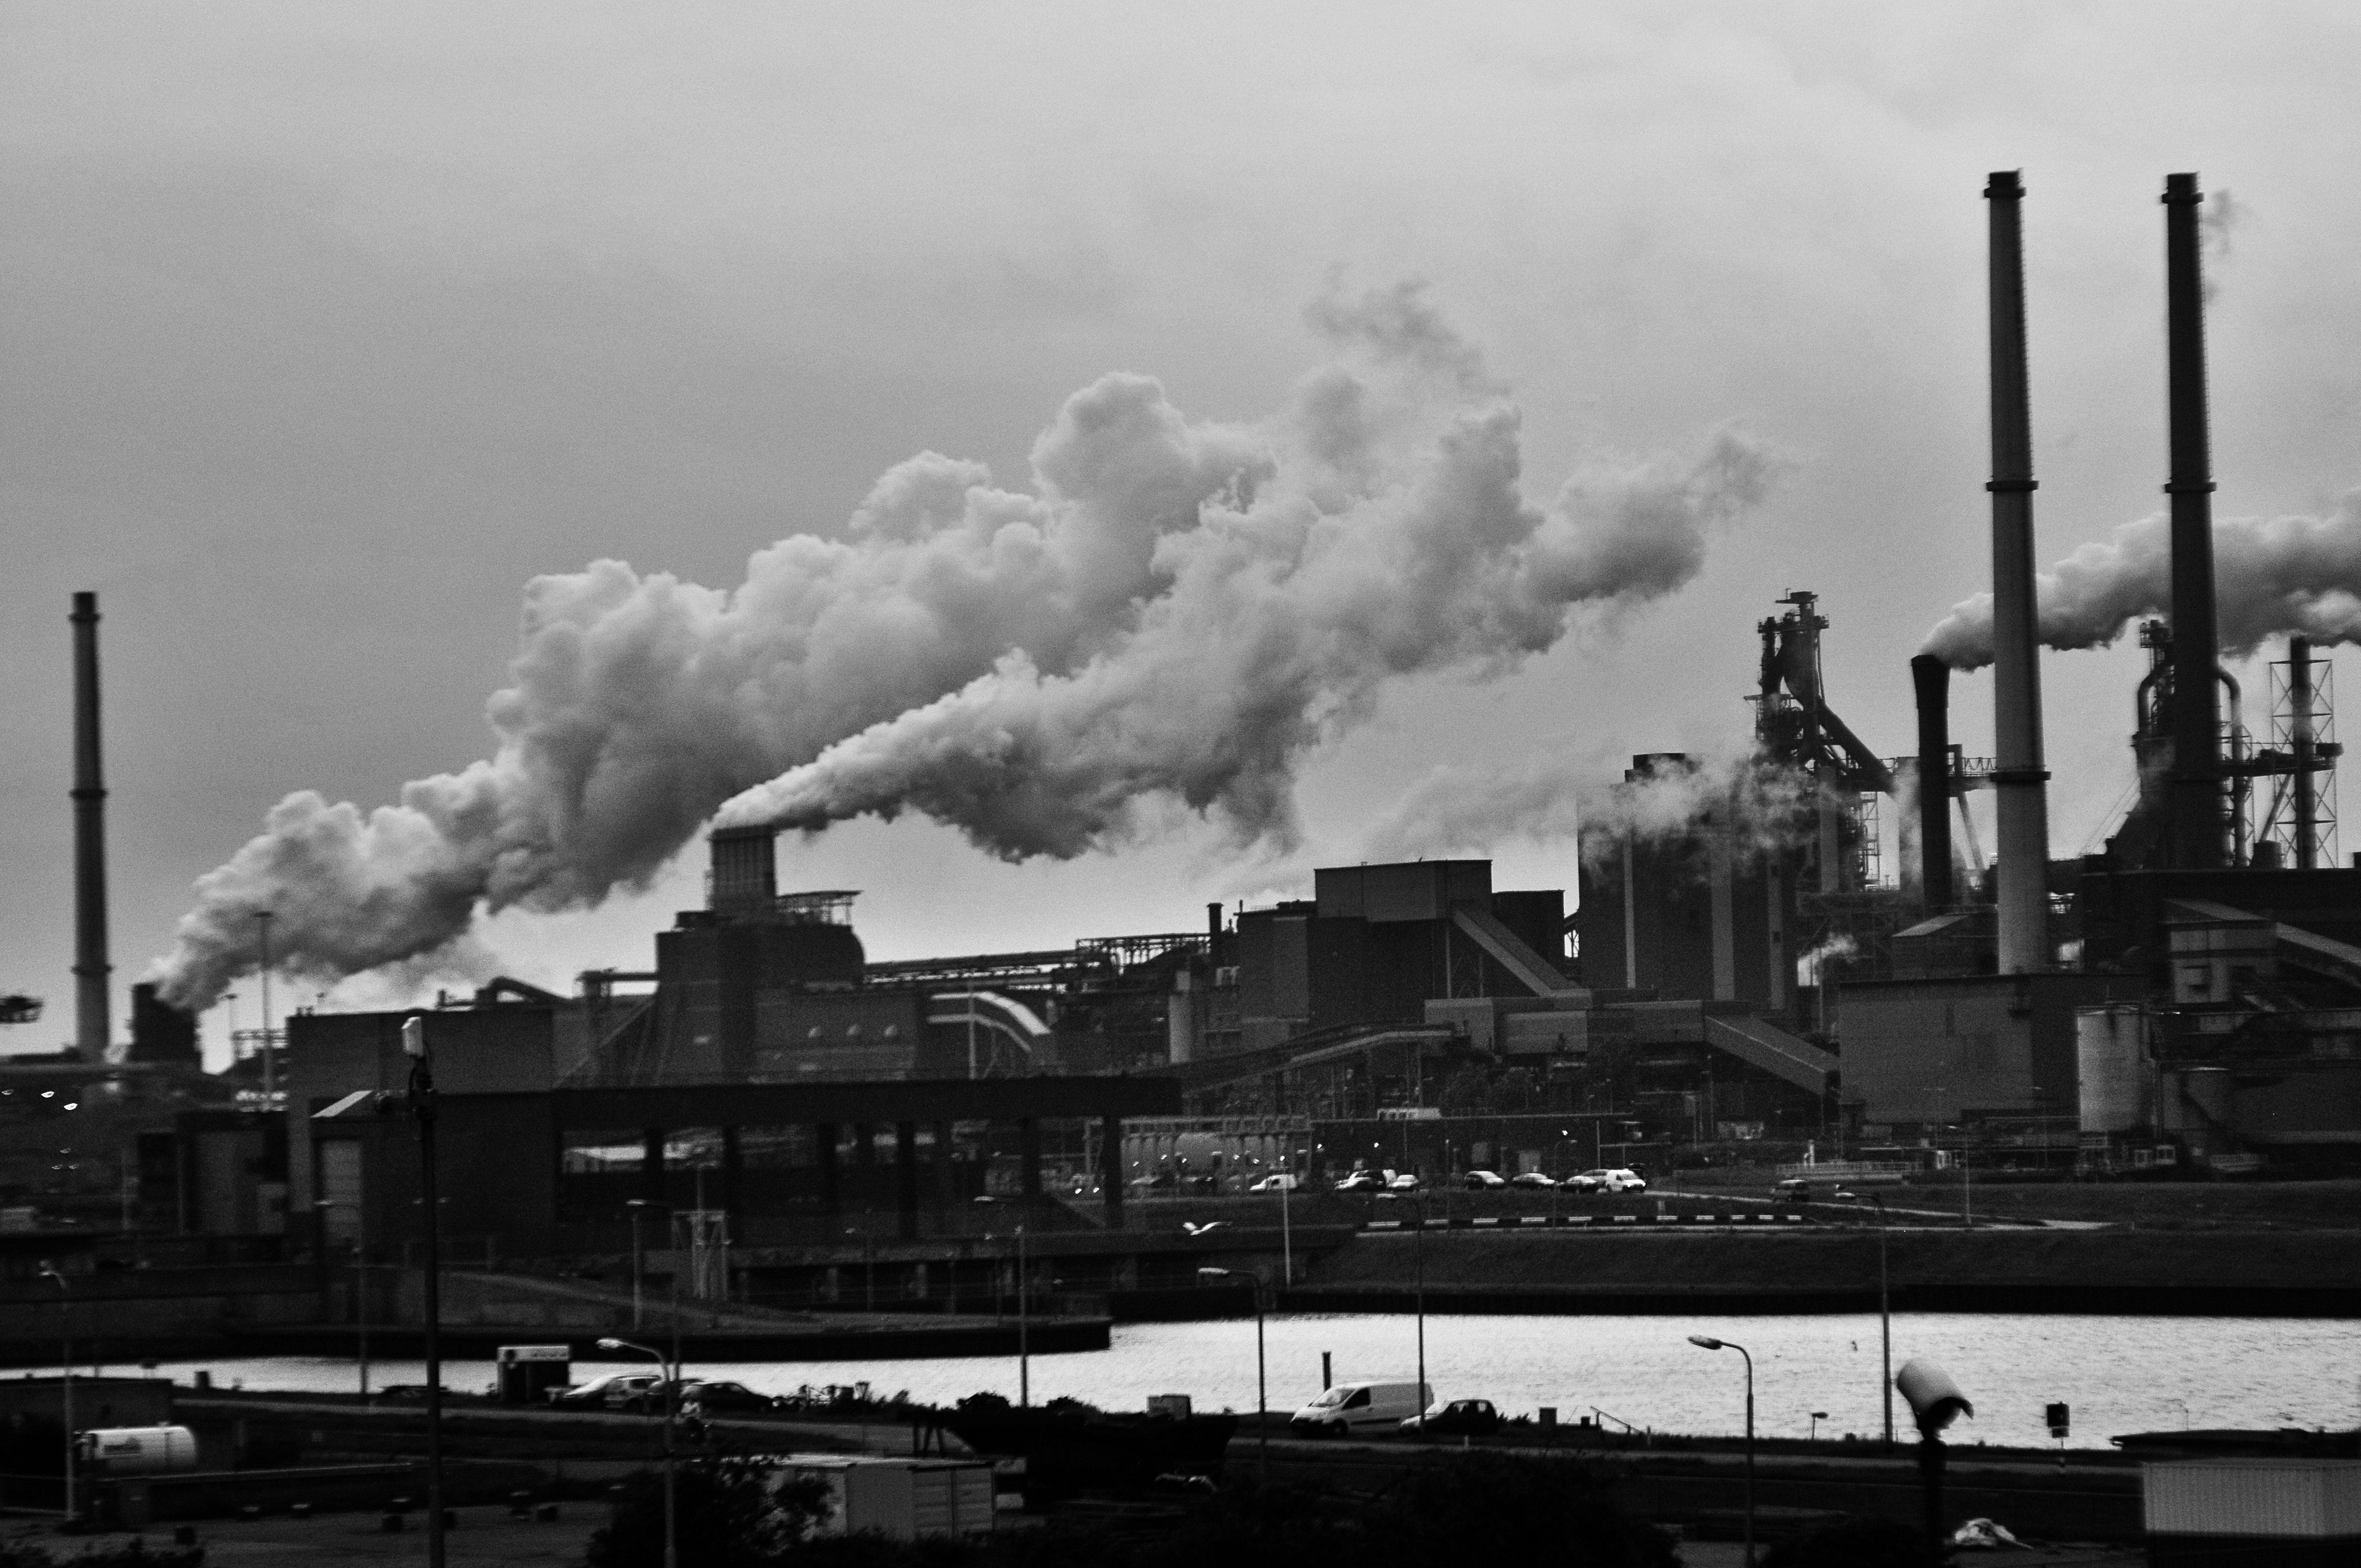 Grayscale Photography of Locomotive Train Beside Factory, Air pollution, Pipes, Technology, Smoke, HQ Photo